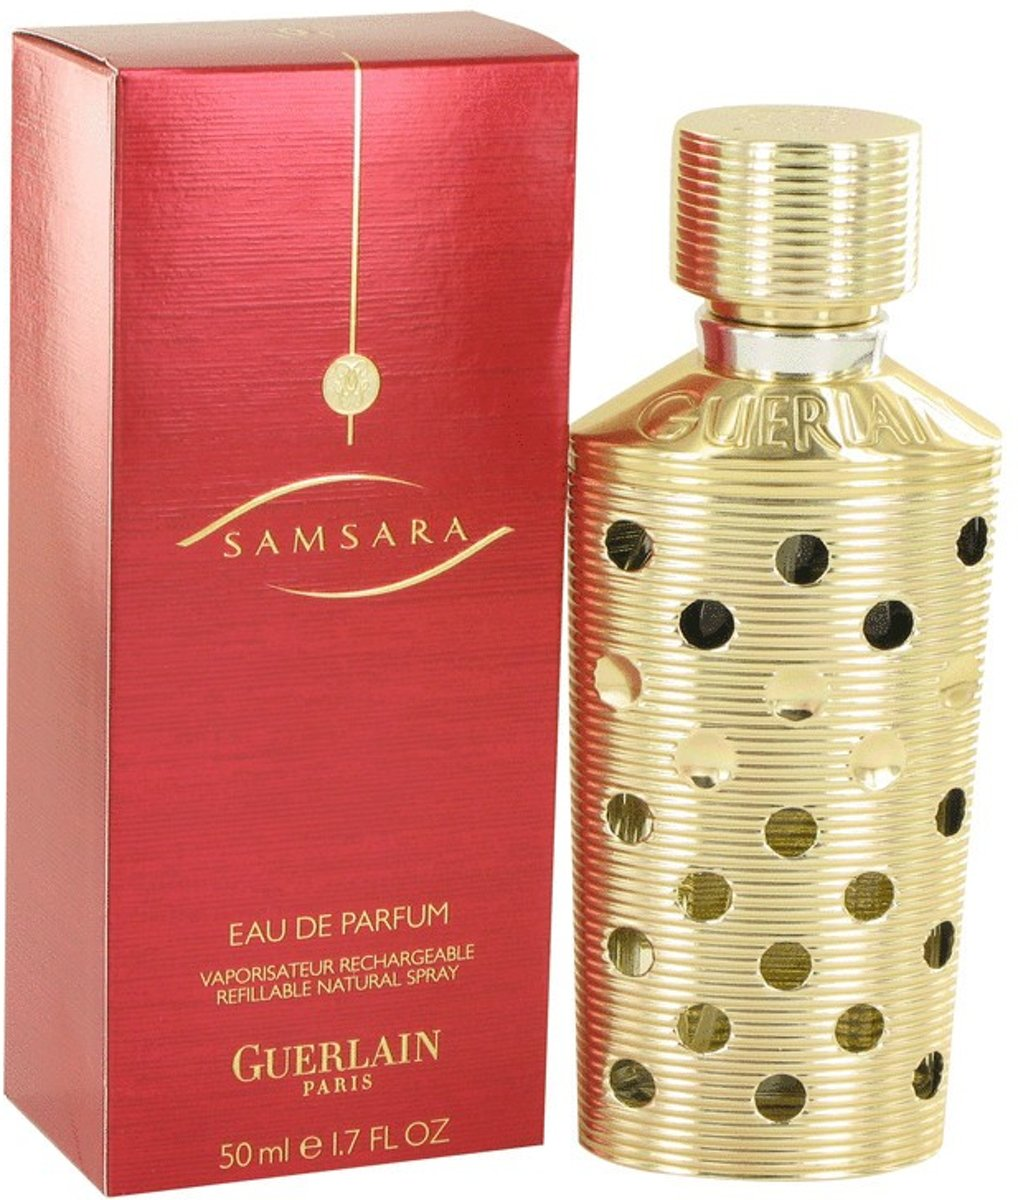 Guerlain Samsara 50 ml - Eau De Parfum Spray Refillable Damesparfum